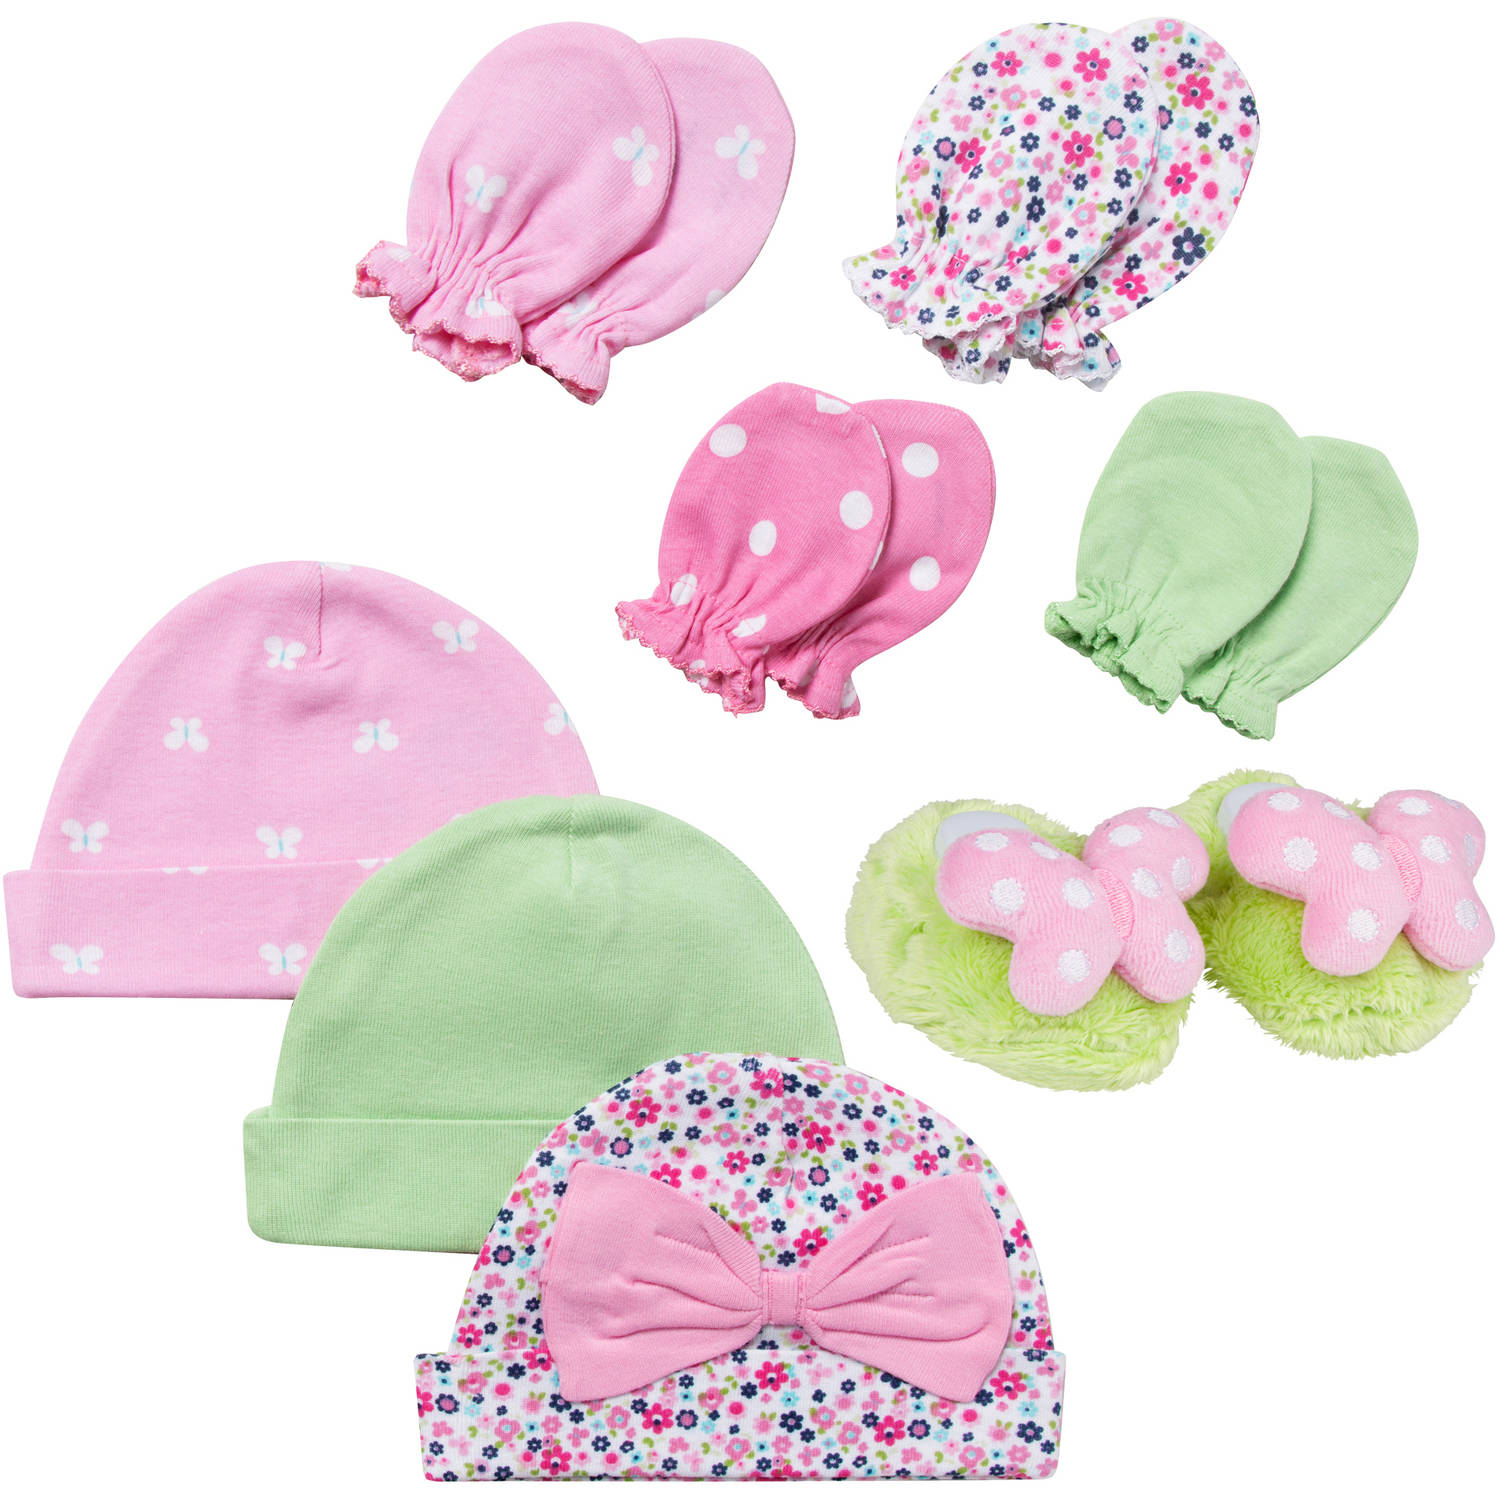 Gerber Newborn Baby Girl  Pink 8 Piece Accessory Set ( Caps - 3 Pack, Mittens - 4 Pack and Velboa Bootie)